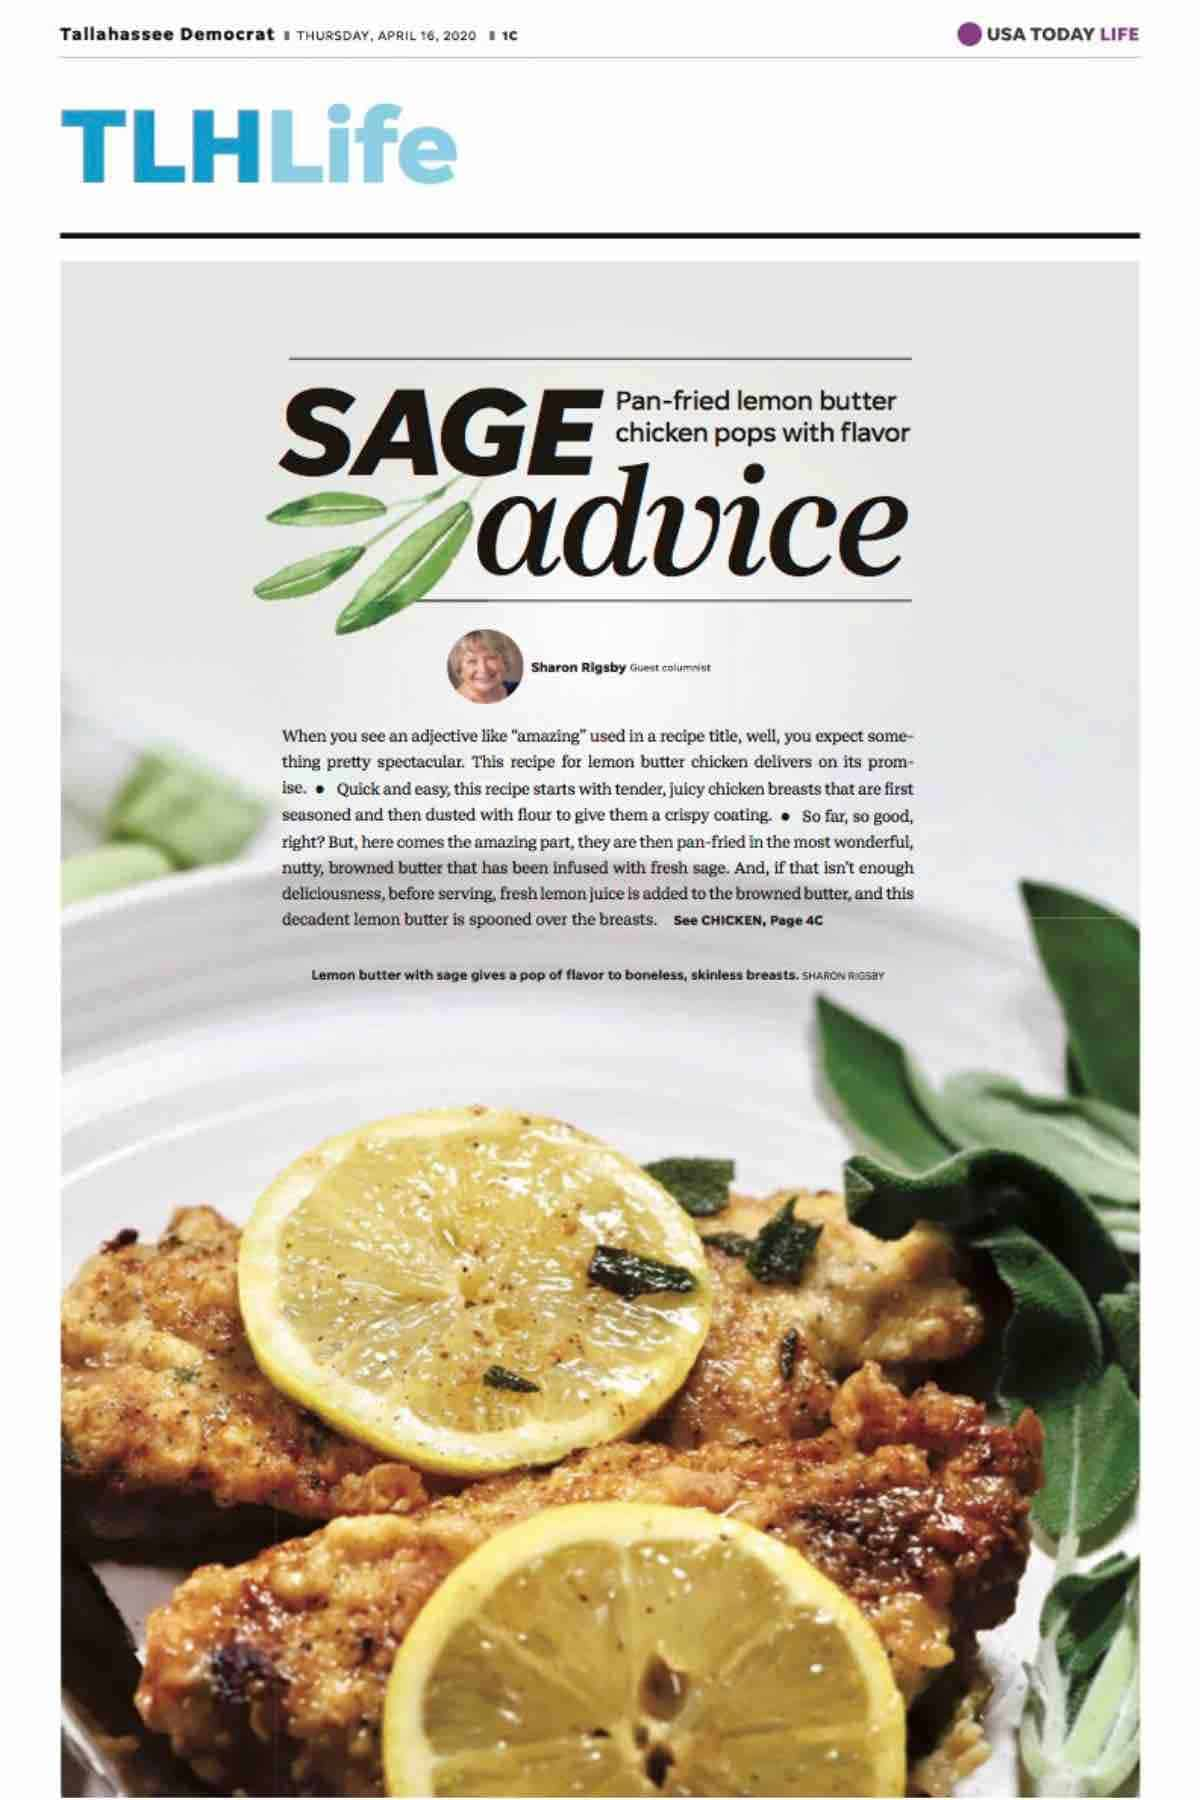 A copy of a recipe for lemon butter chicken in the Tallahassee Democrat.